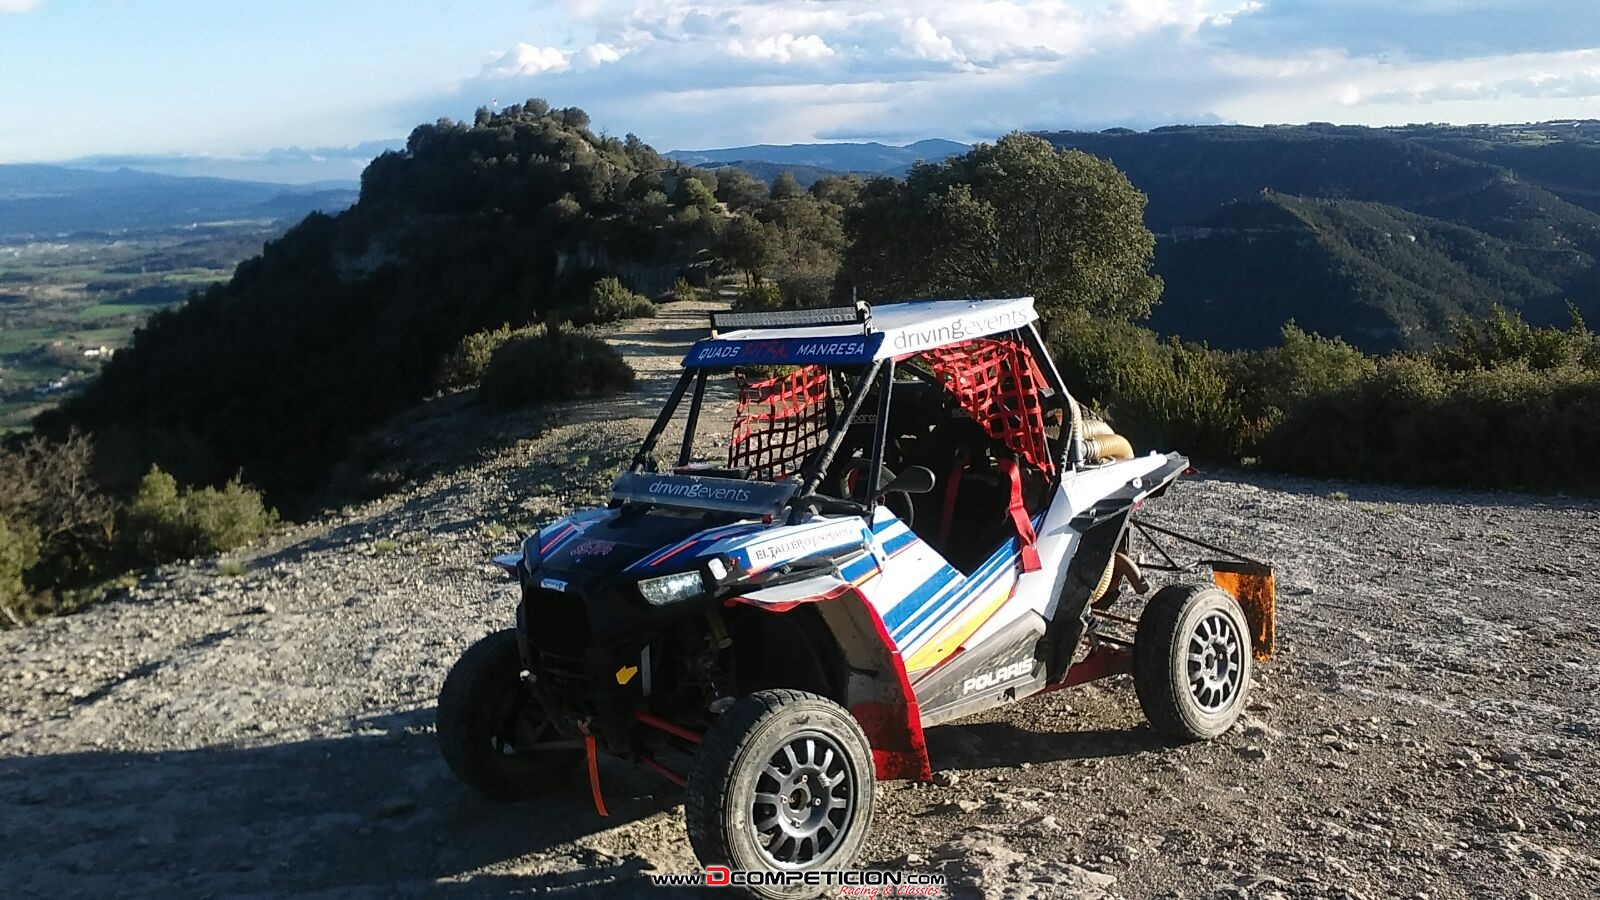 Vendo Polaris rzr 1000 XP